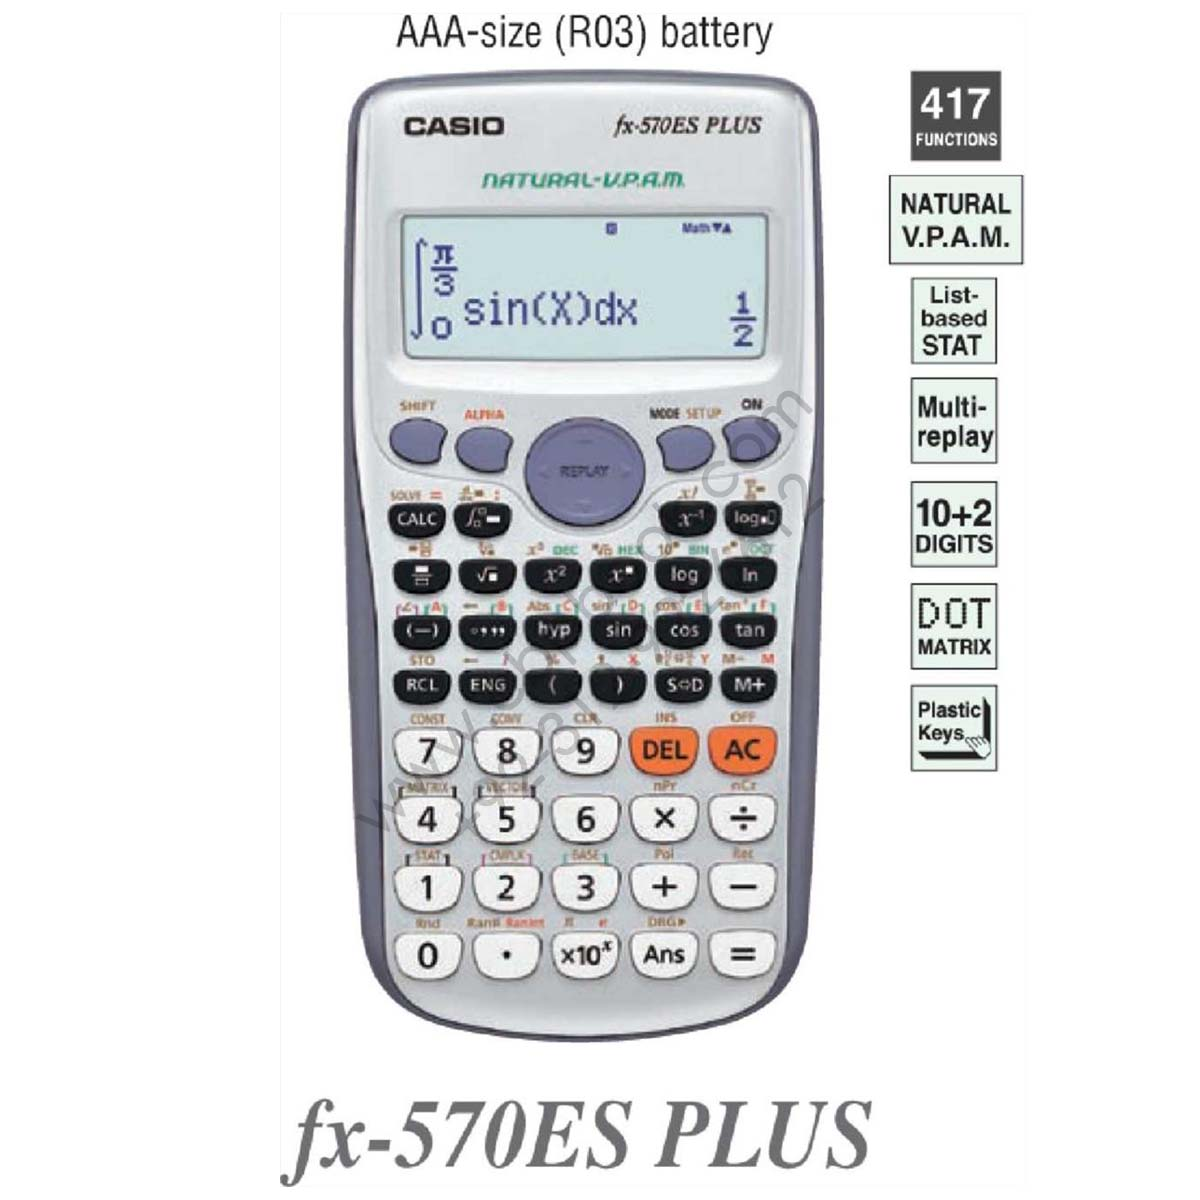 casio calculator price in pakistan product tags cbpbook rh cbpbook com casio n78 calculator manual casio ez label printer n78 manual